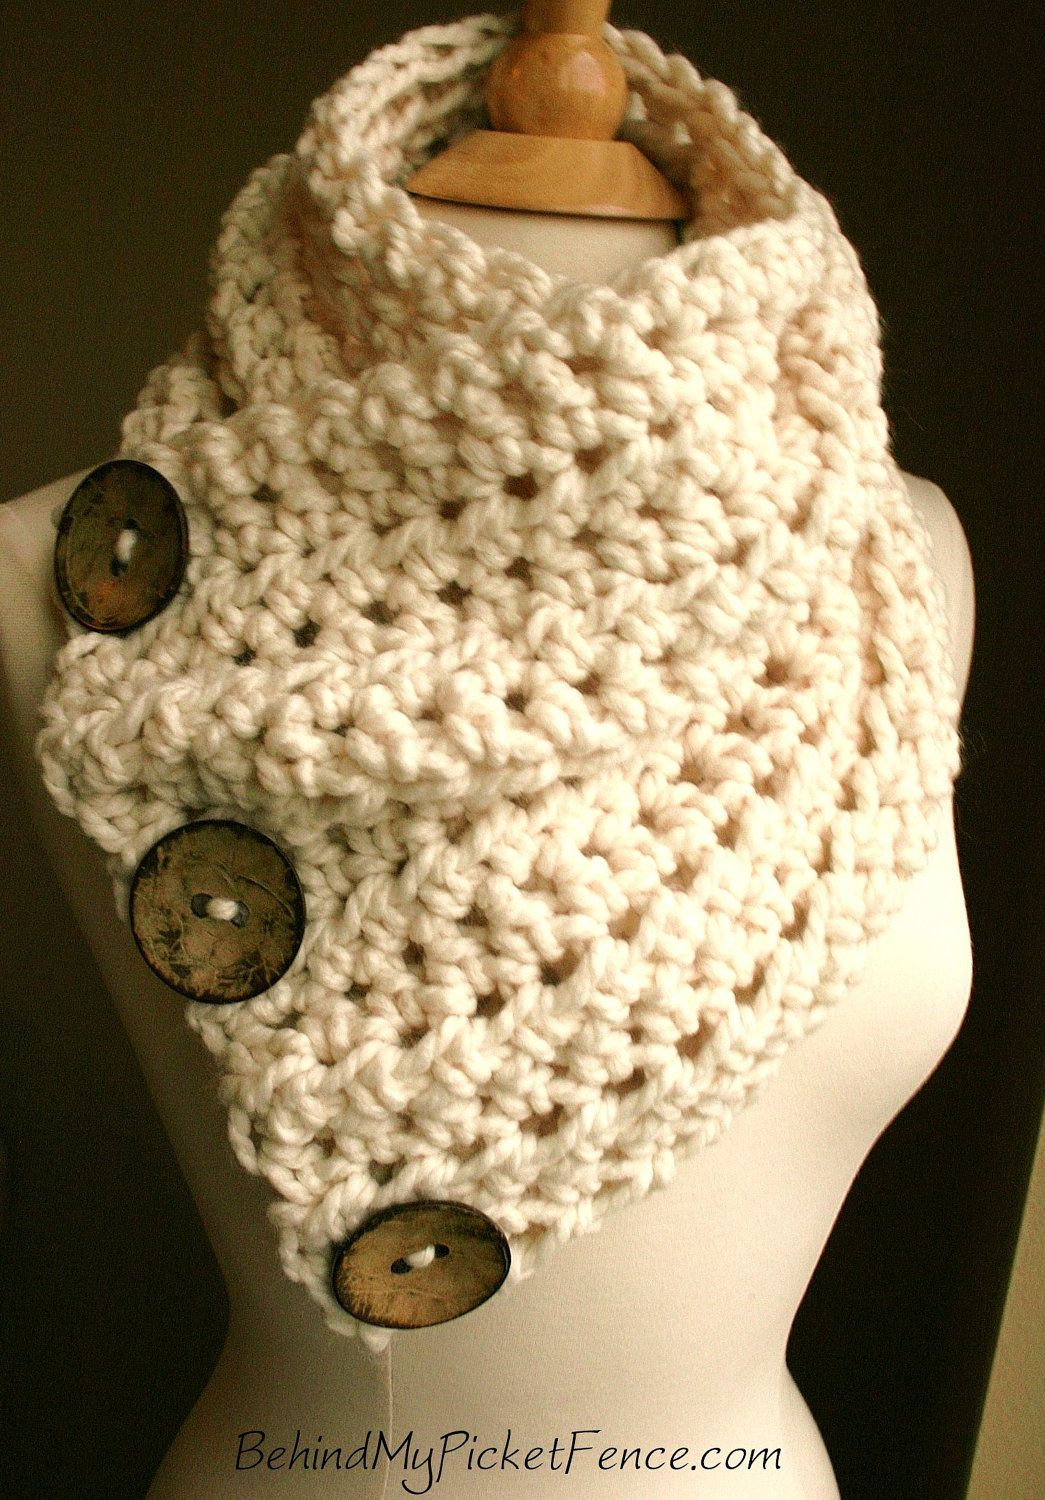 New BOSTON HARBOR SCARF - Warm, soft & stylish scarf with 3 large ...